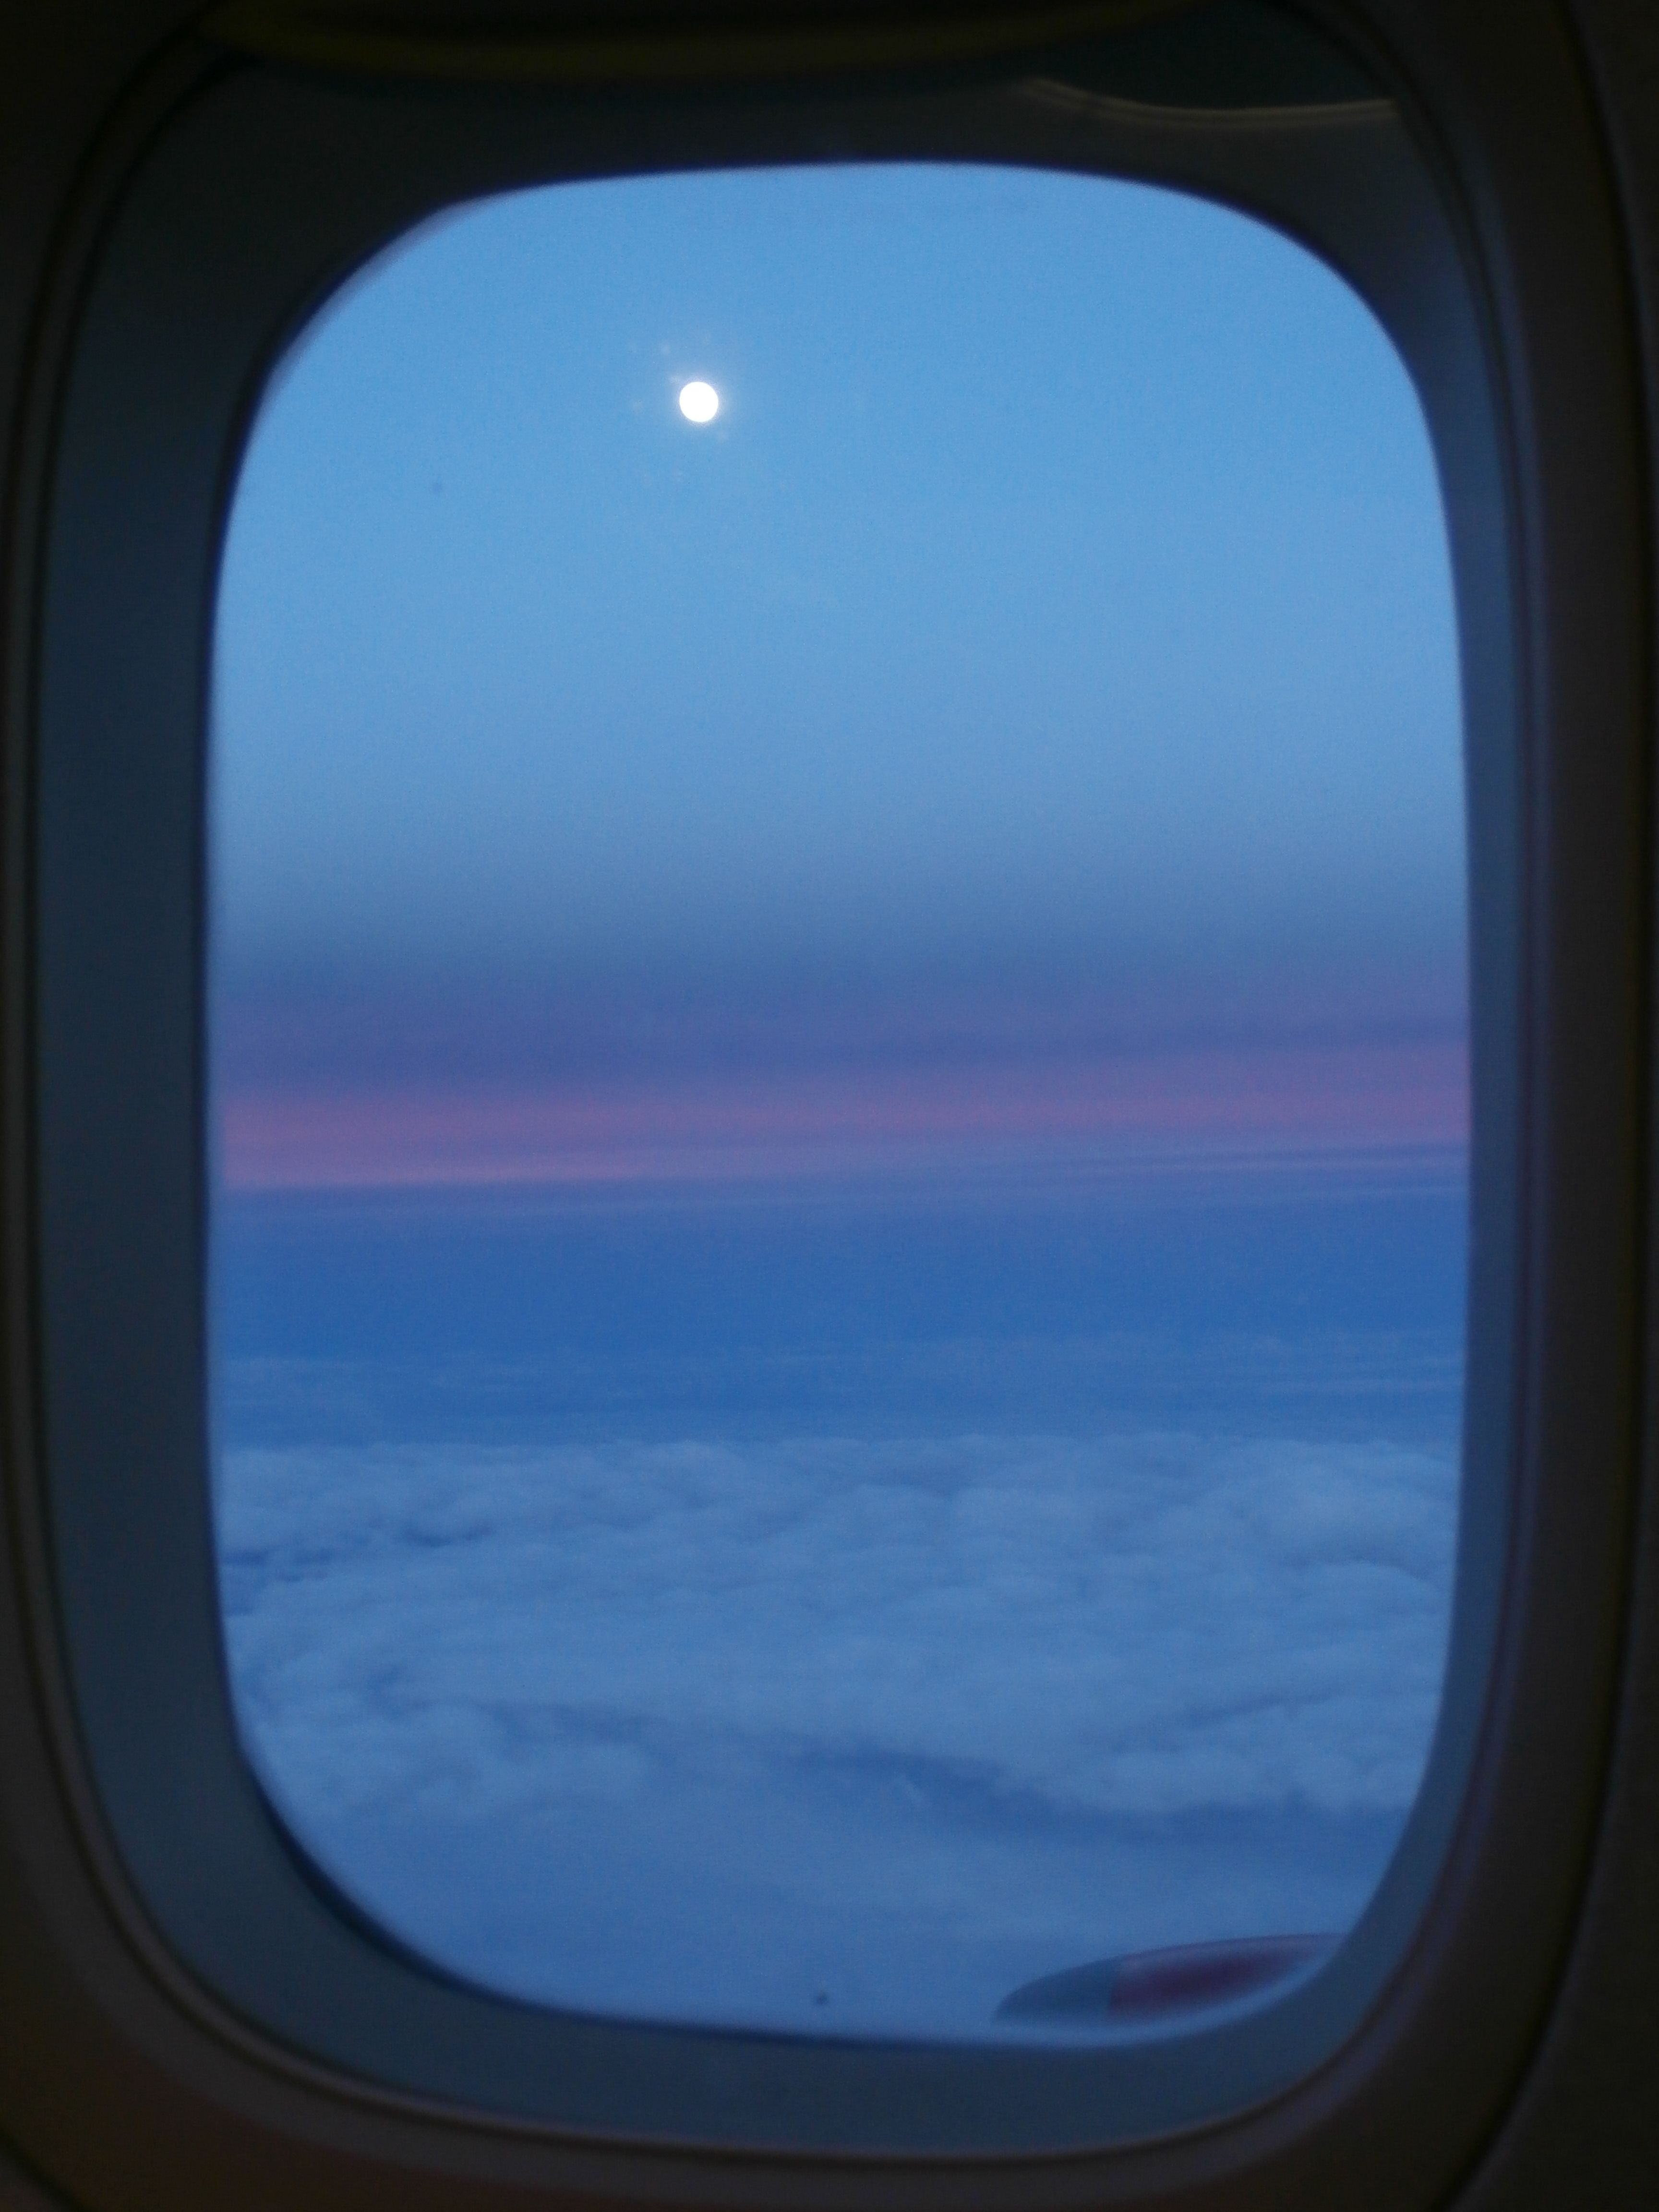 TMN© Just because you can...  A shot from the plane window, setting sun and rising moon on only fluffy clouds.